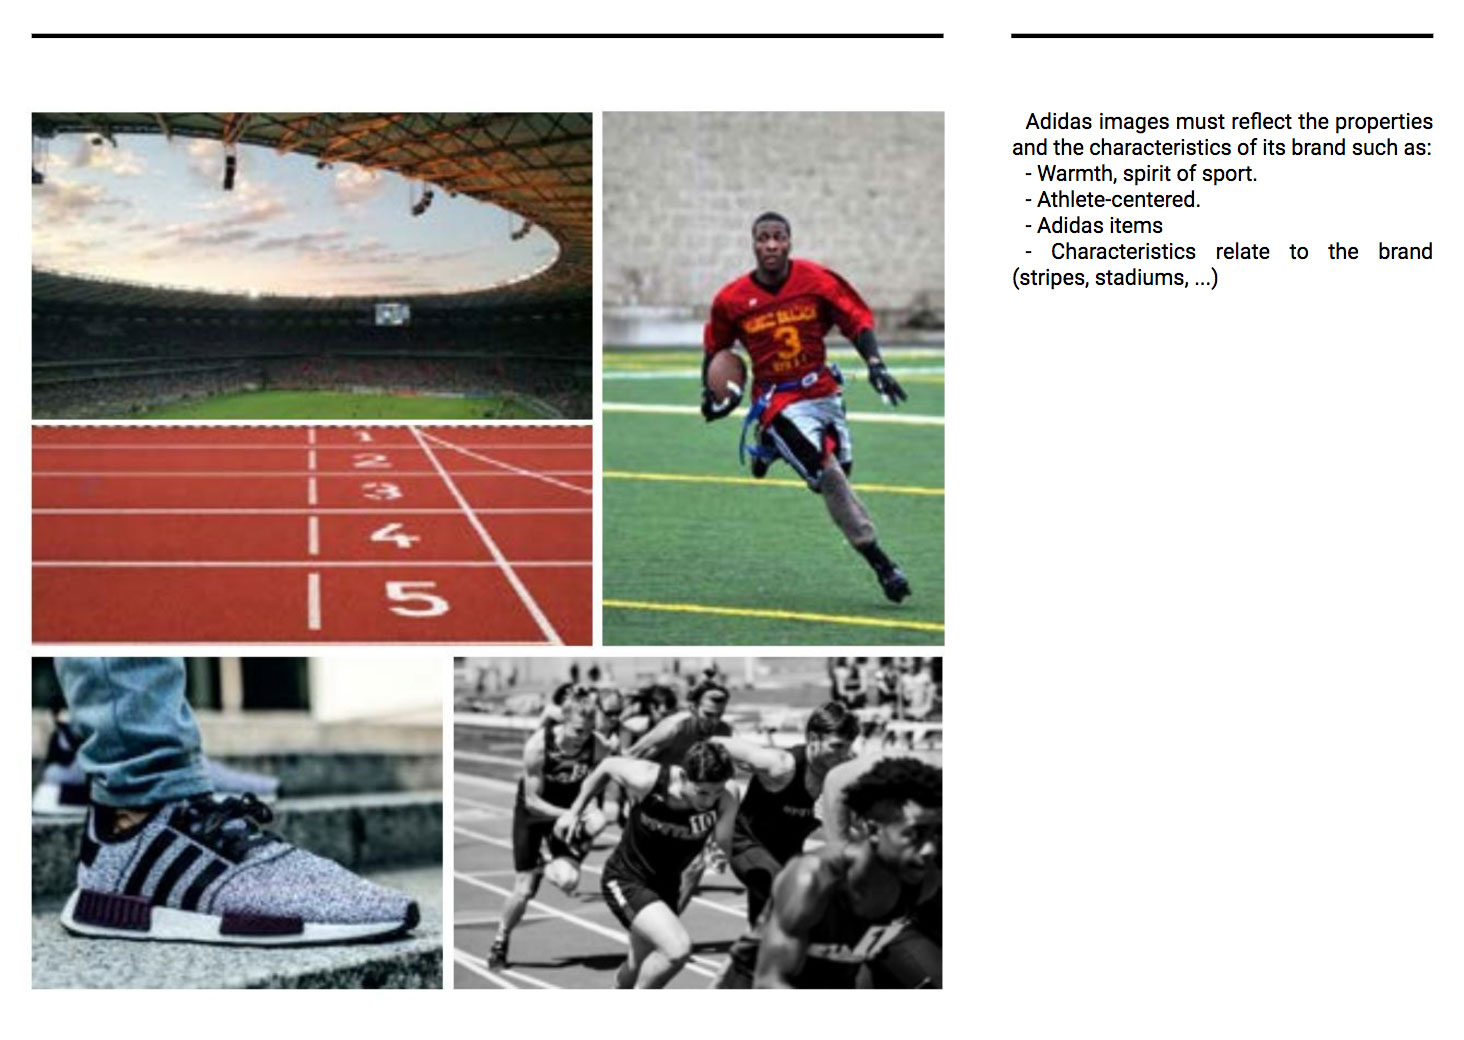 Adidas' Brand Guidelines for Photography